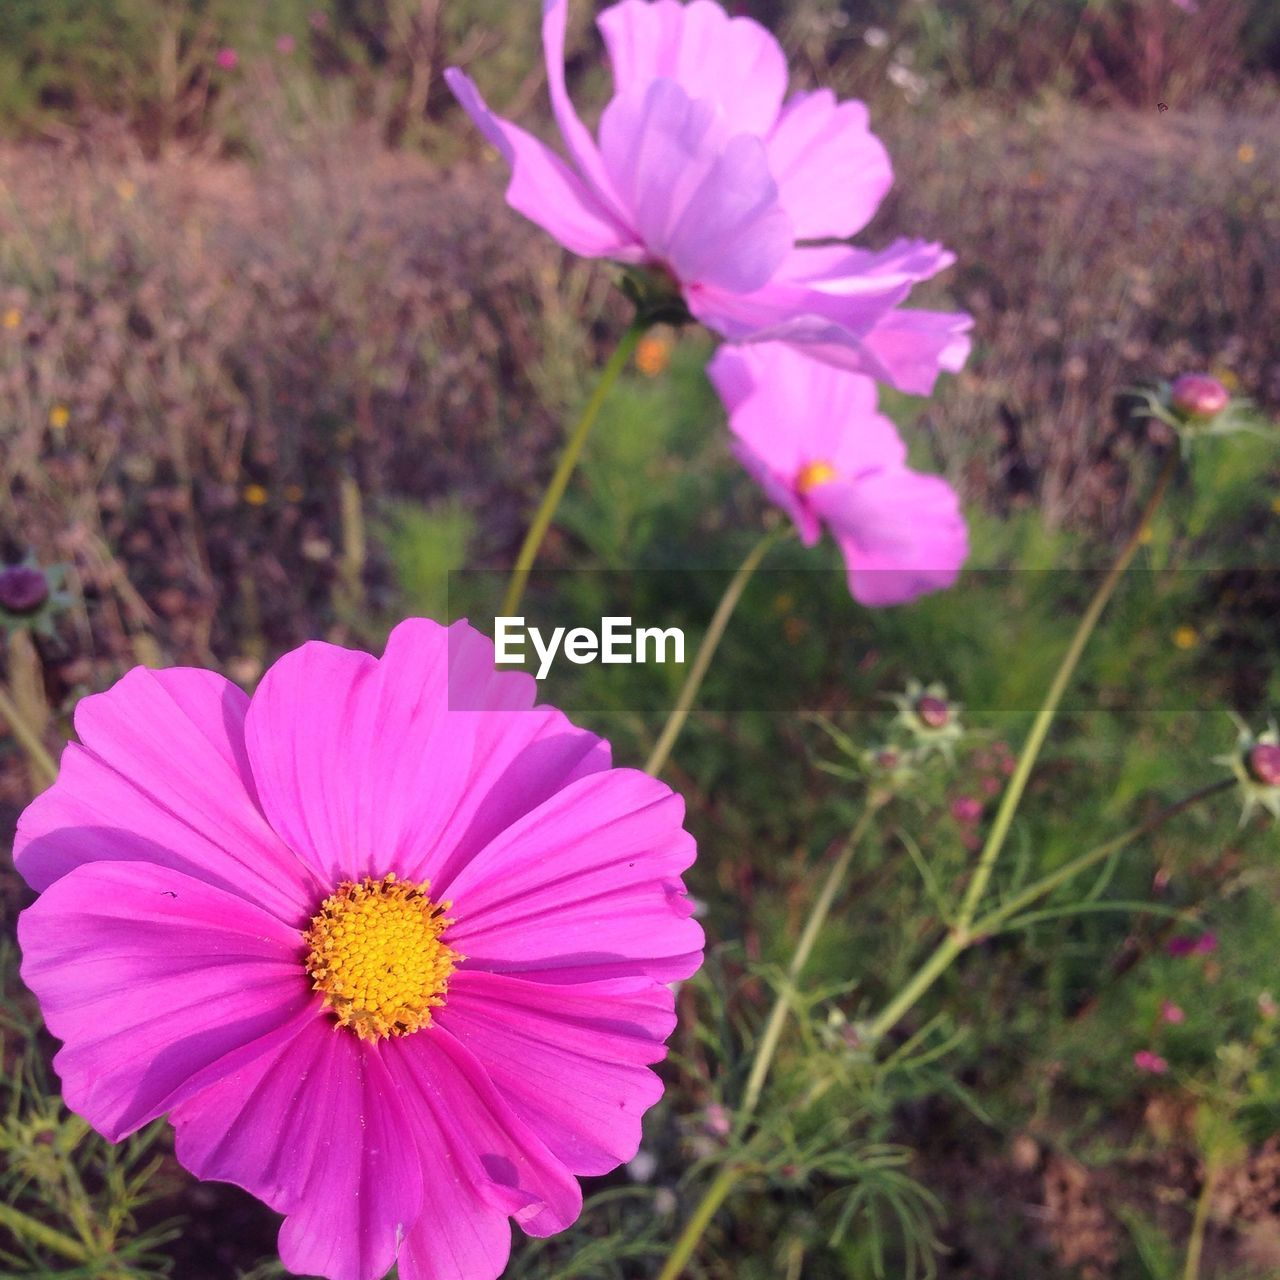 flower, petal, flower head, beauty in nature, fragility, nature, growth, freshness, plant, blooming, pollen, pink color, field, outdoors, no people, day, cosmos flower, yellow, close-up, focus on foreground, springtime, zinnia, eastern purple coneflower